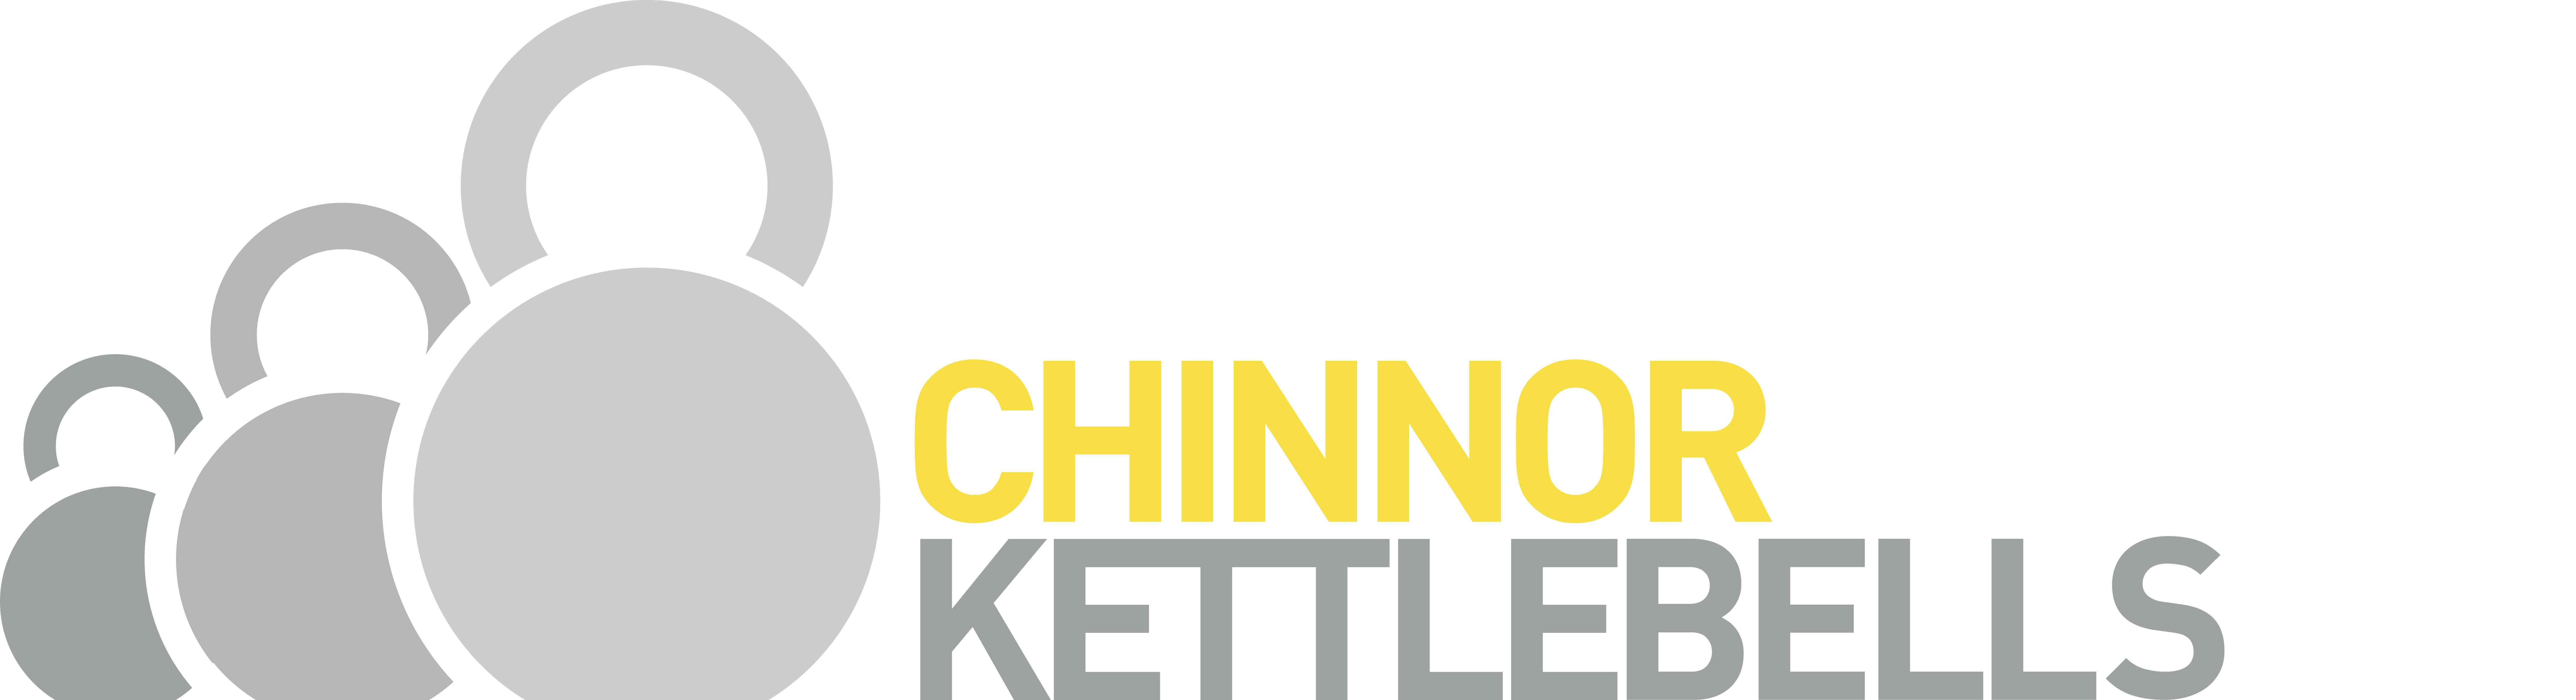 chinnor-kettlebells-logo_high-res